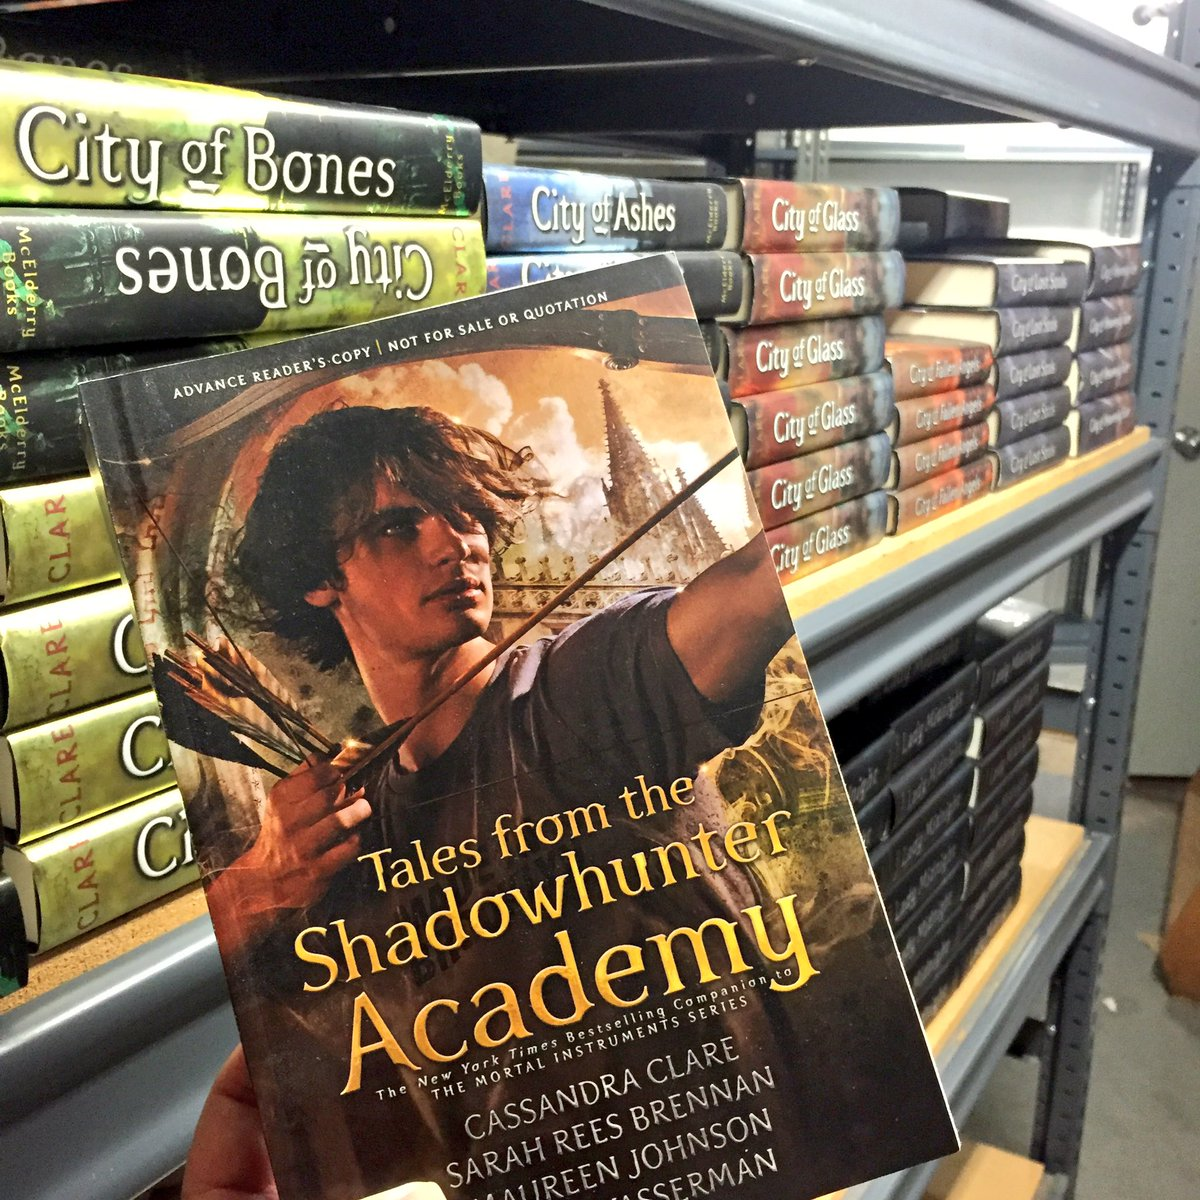 An ARC of Tales from the Shadowhunter Academy has arrived! Are you ready for the next @cassieclare release in Nov? https://t.co/GhrqpBsOhX